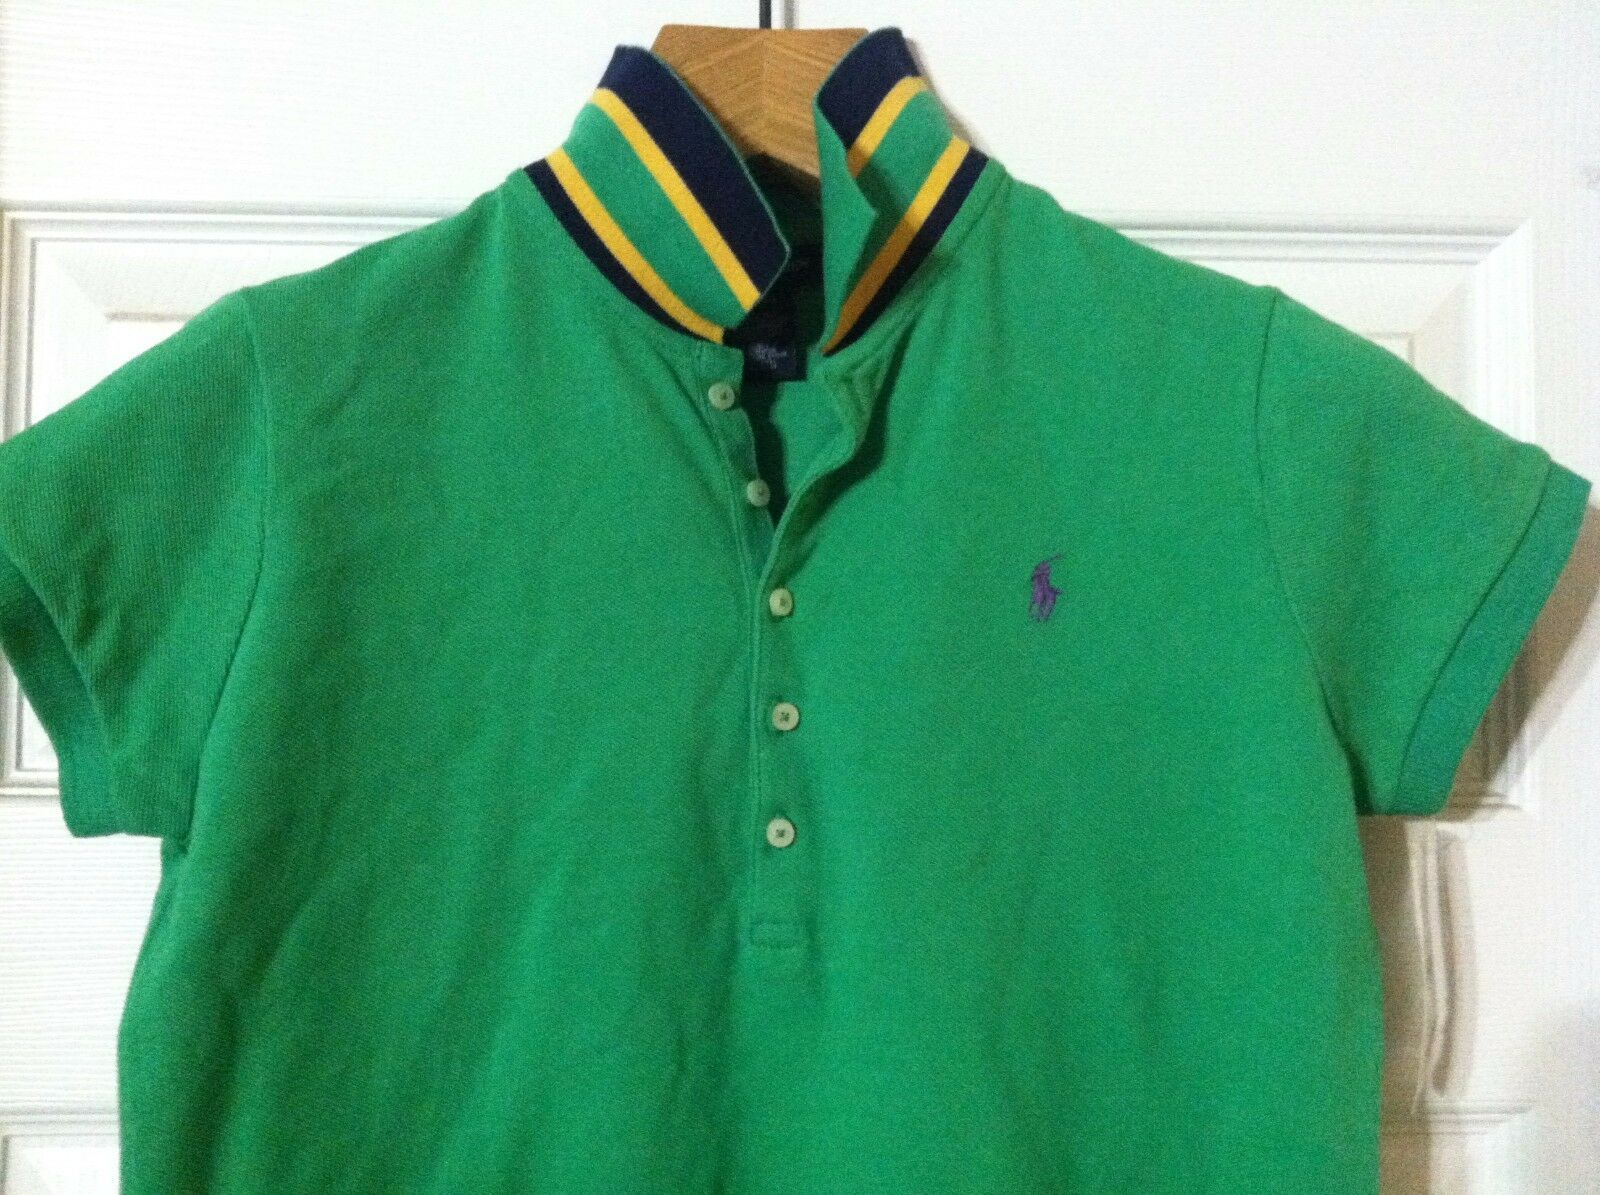 RALPH LAUREN TEENAGE GIRLS NEW GREEN 100%COTTON POLO SHIRT SIZE: XL(16)